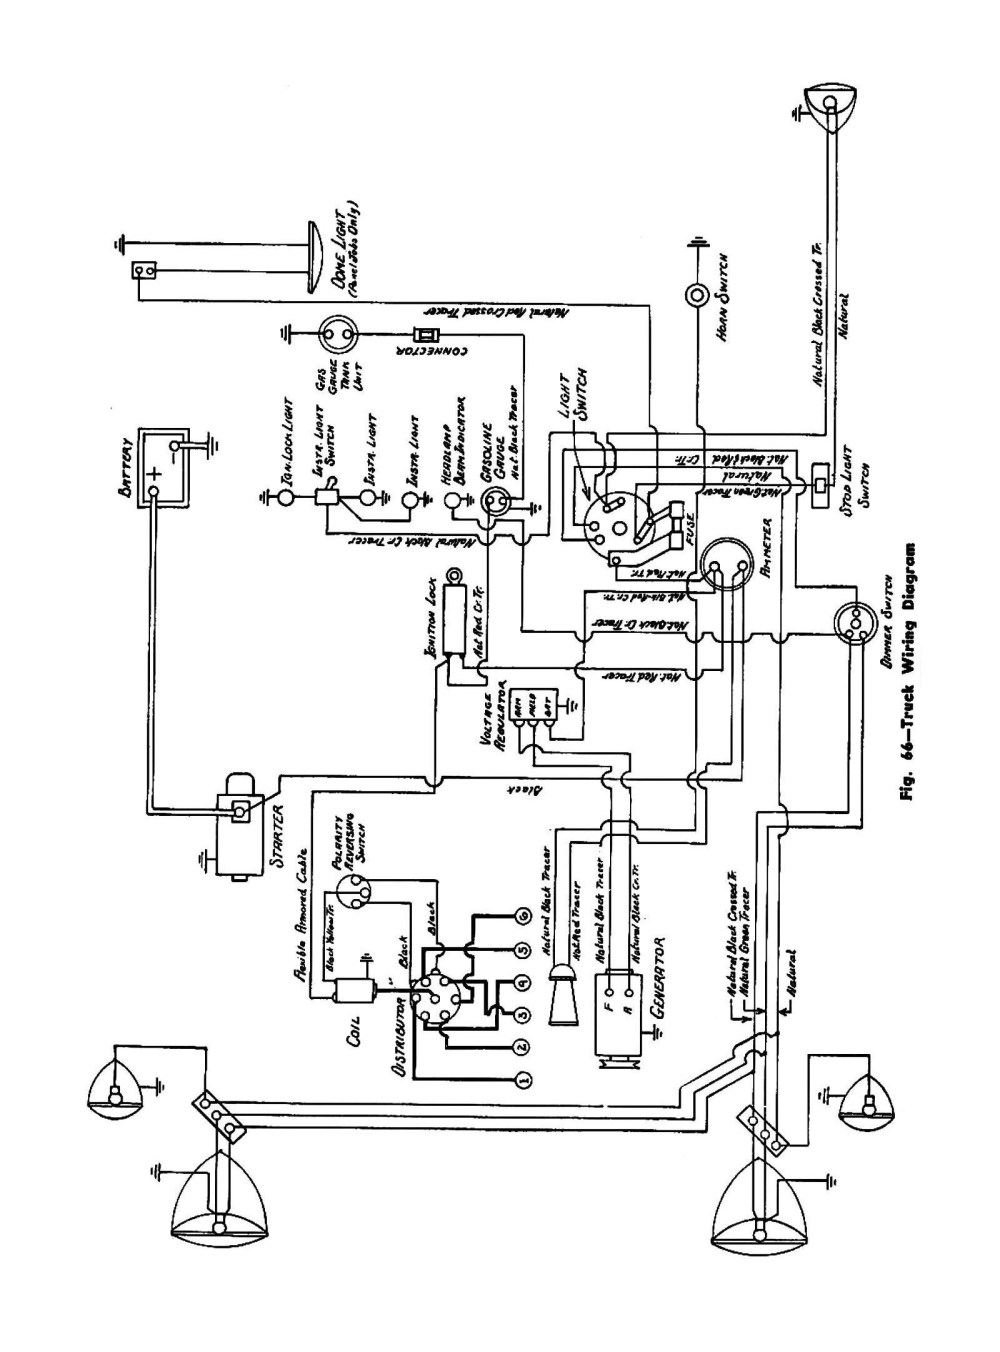 medium resolution of 57 chevy horn diagram nice place to get wiring diagram u2022 57 chevy ignition wiring diagram 57 chevy wiring diagram